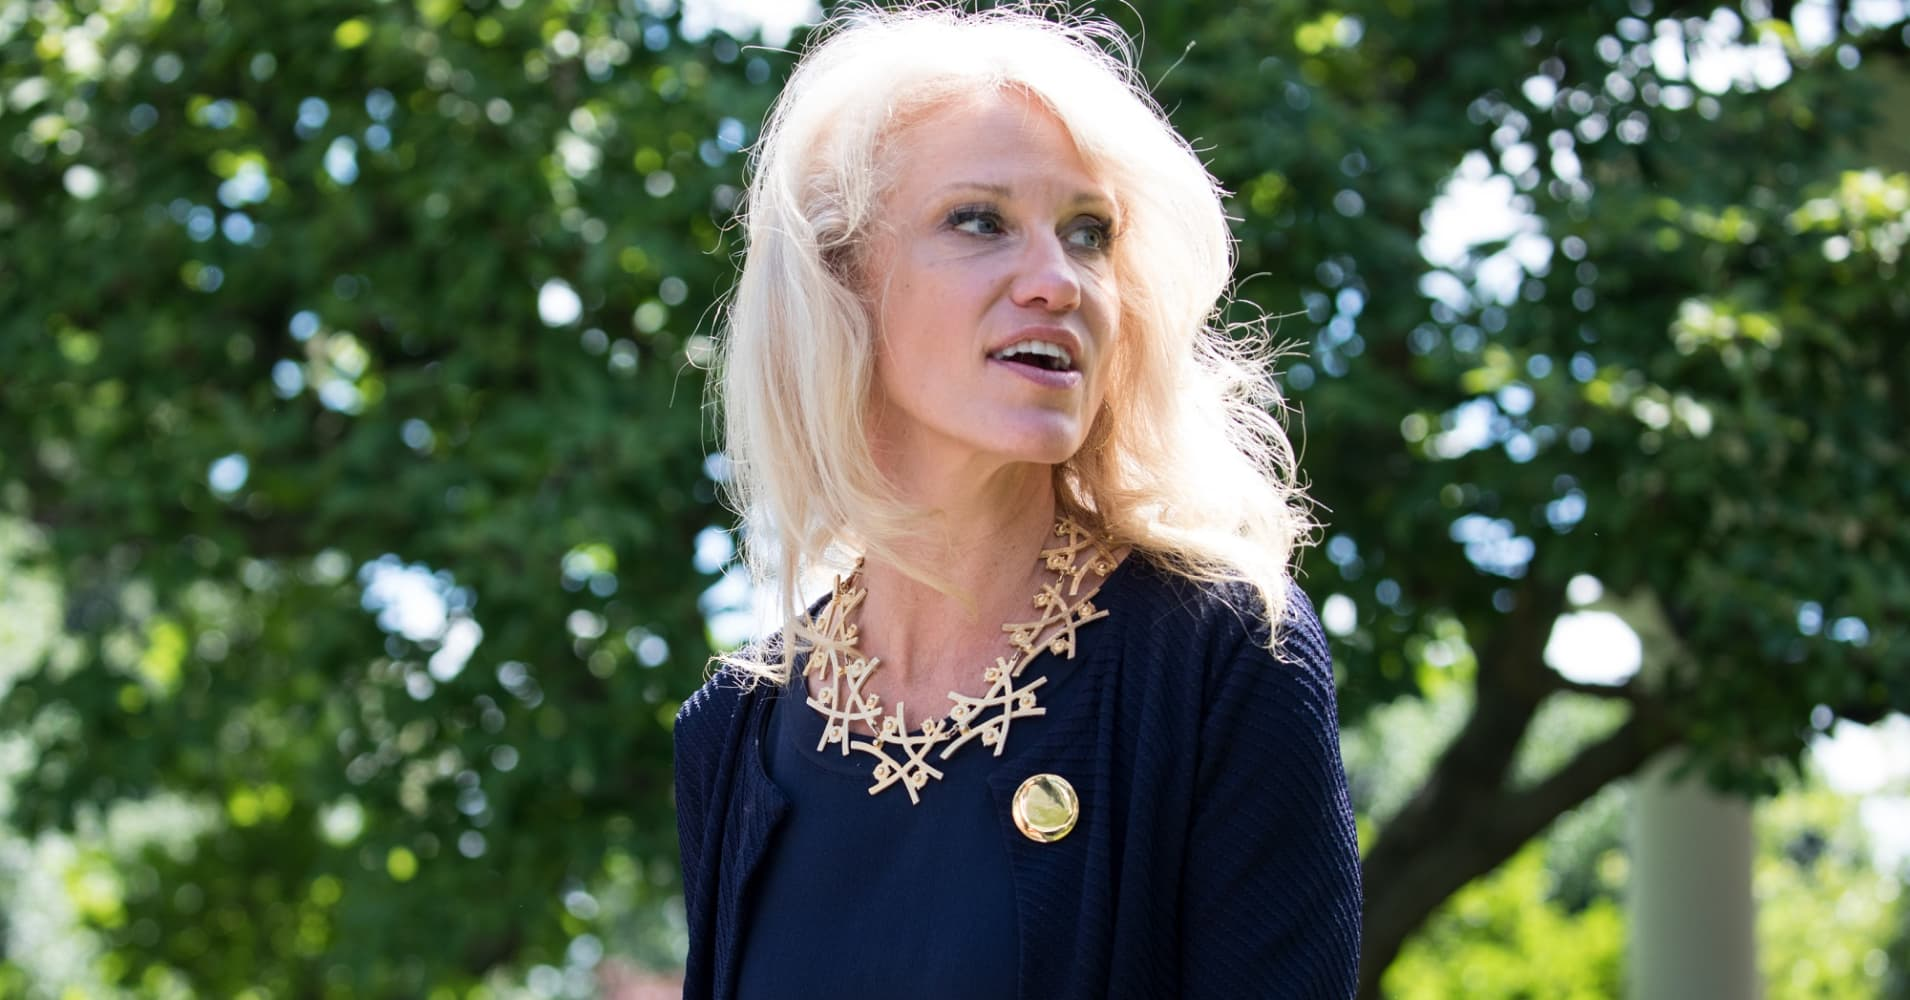 Kellyanne Conway, Senior Counselor U.S. President Donald Trump, takes home $179,700 for her White House job.